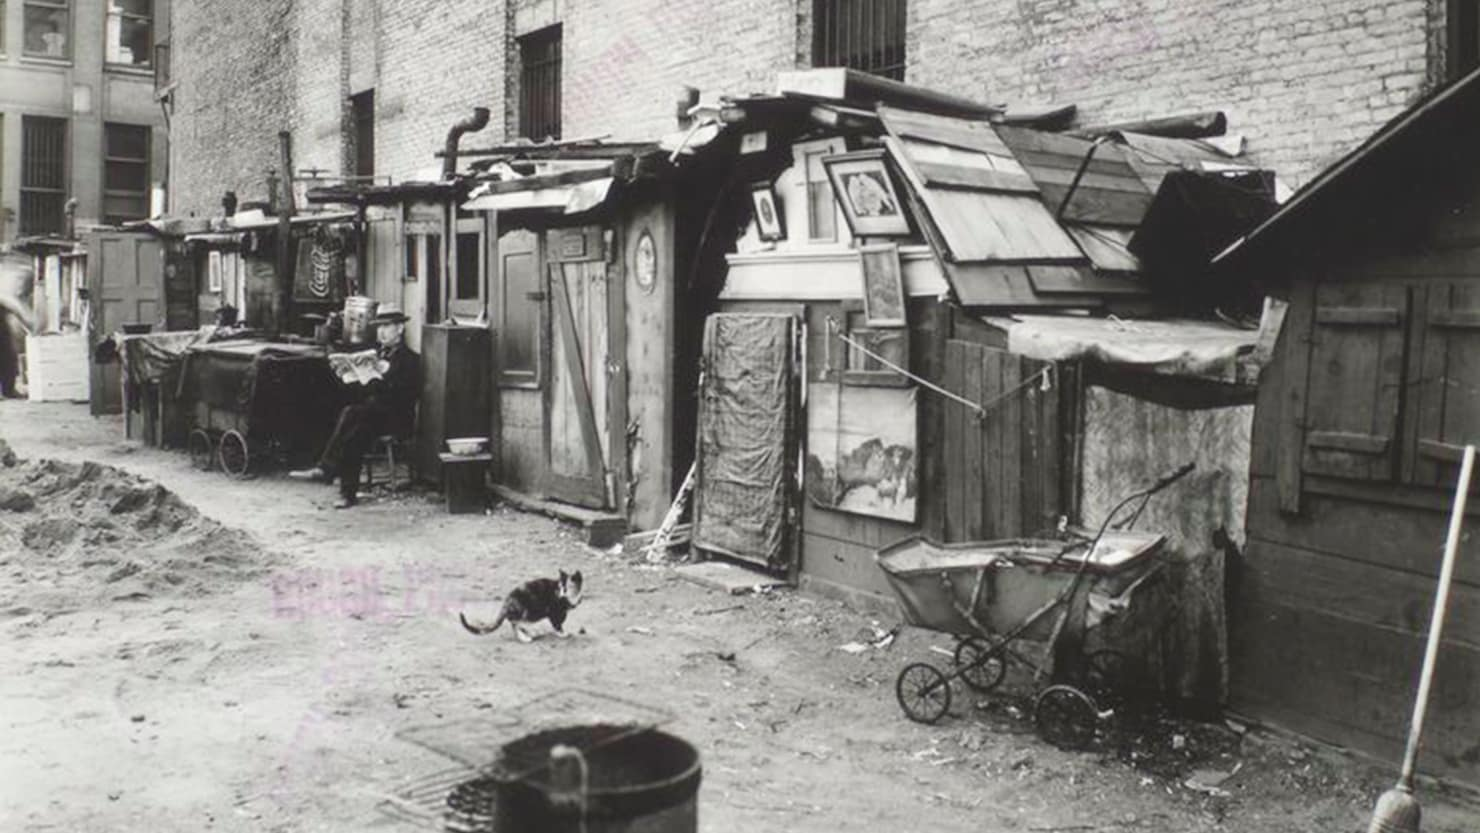 Great Depression era homeless